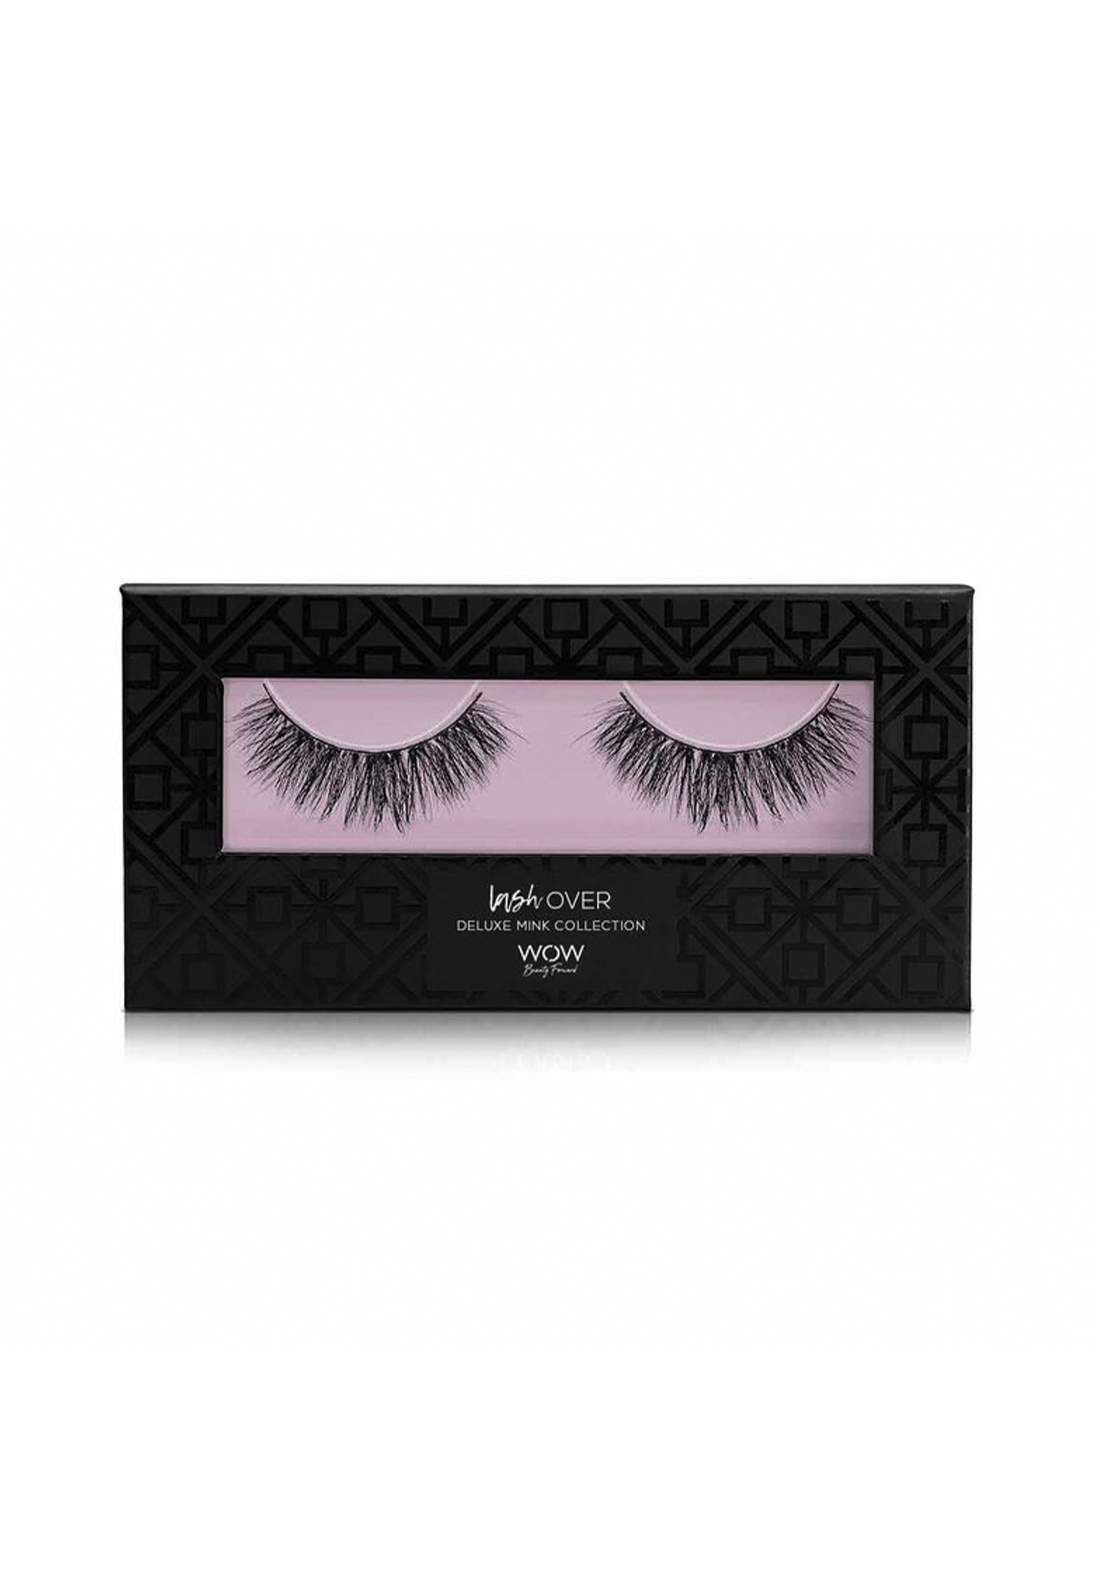 Wow By Wojooh W100 Lash Over Deluxe Mink رموش